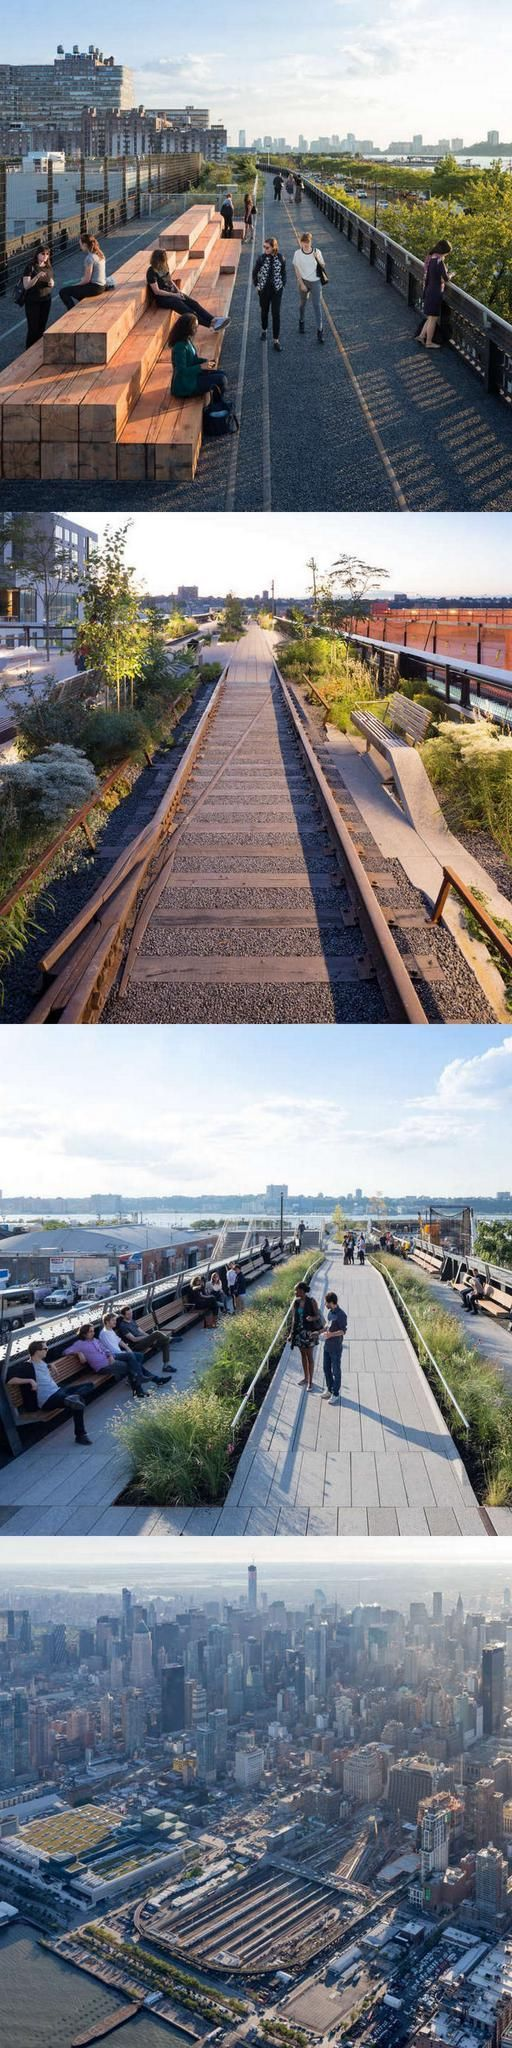 The third and final phase of New York City's High Line opened to the public in September 2014. Click image for link to full profile and visit the slowottawa.ca boards >> https://www.pinterest.com/slowottawa/: